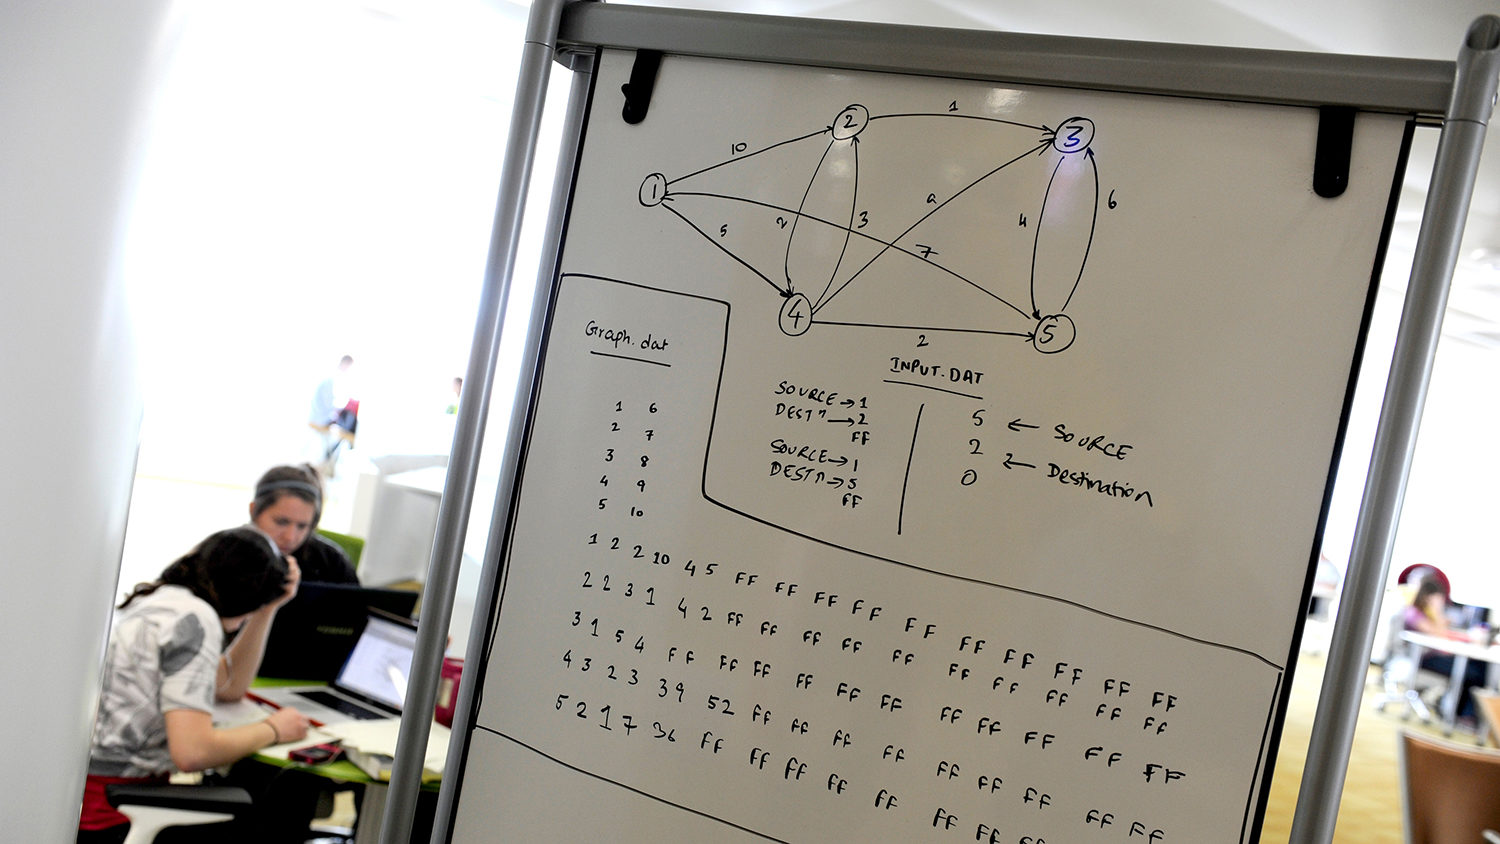 data on a whiteboard